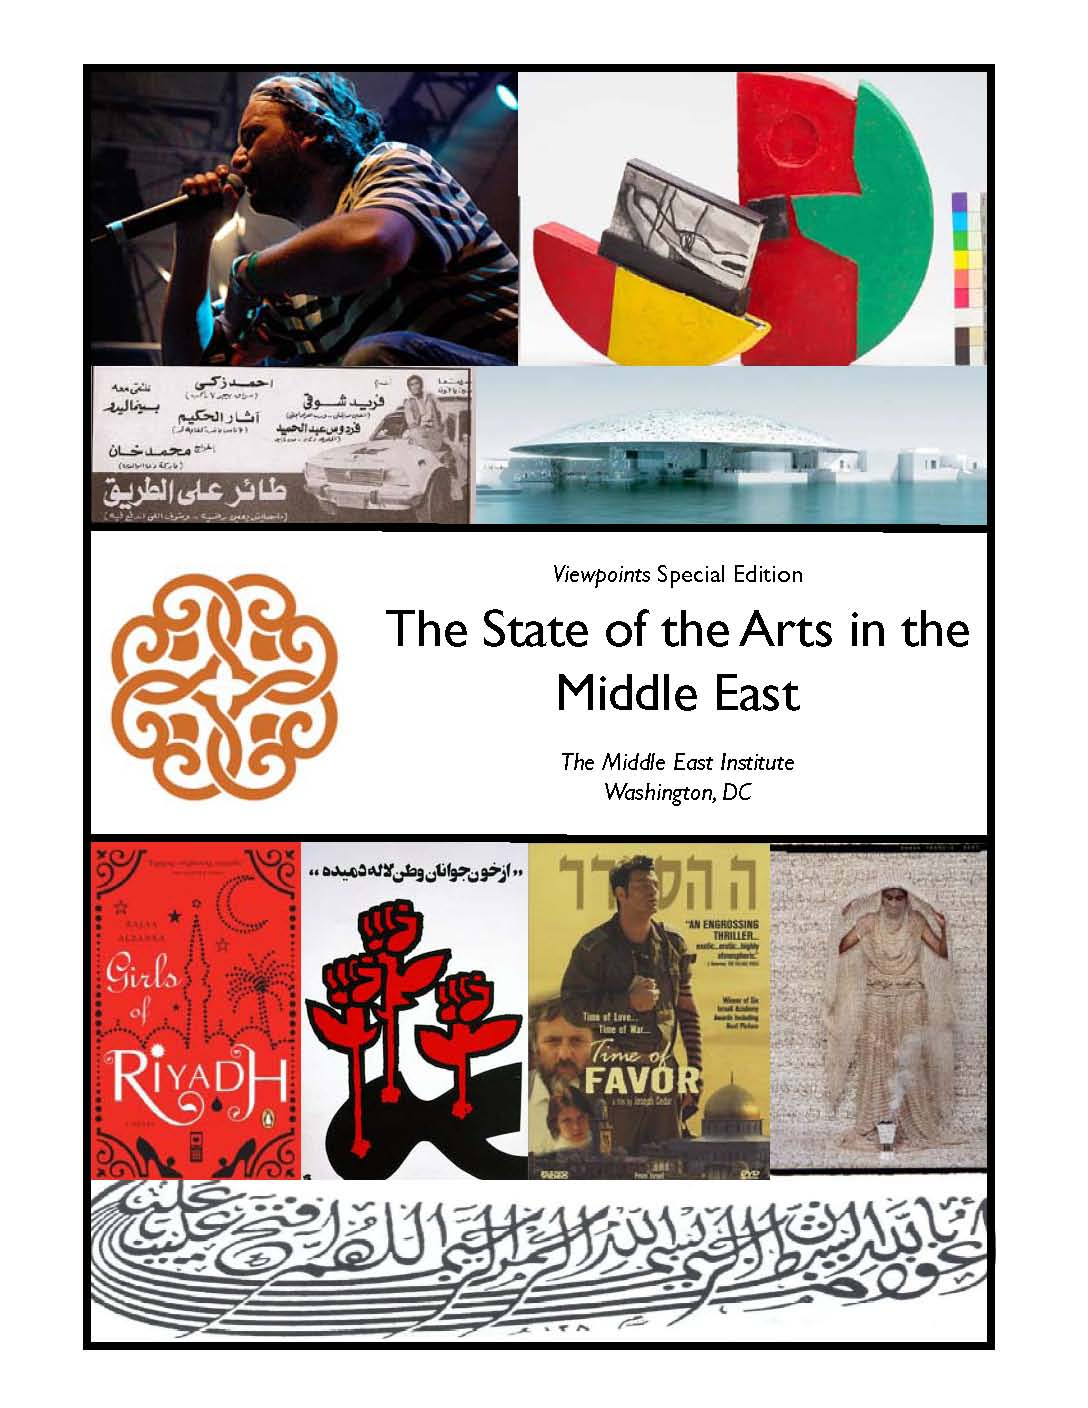 Introduction to The State of the Arts in the Middle East